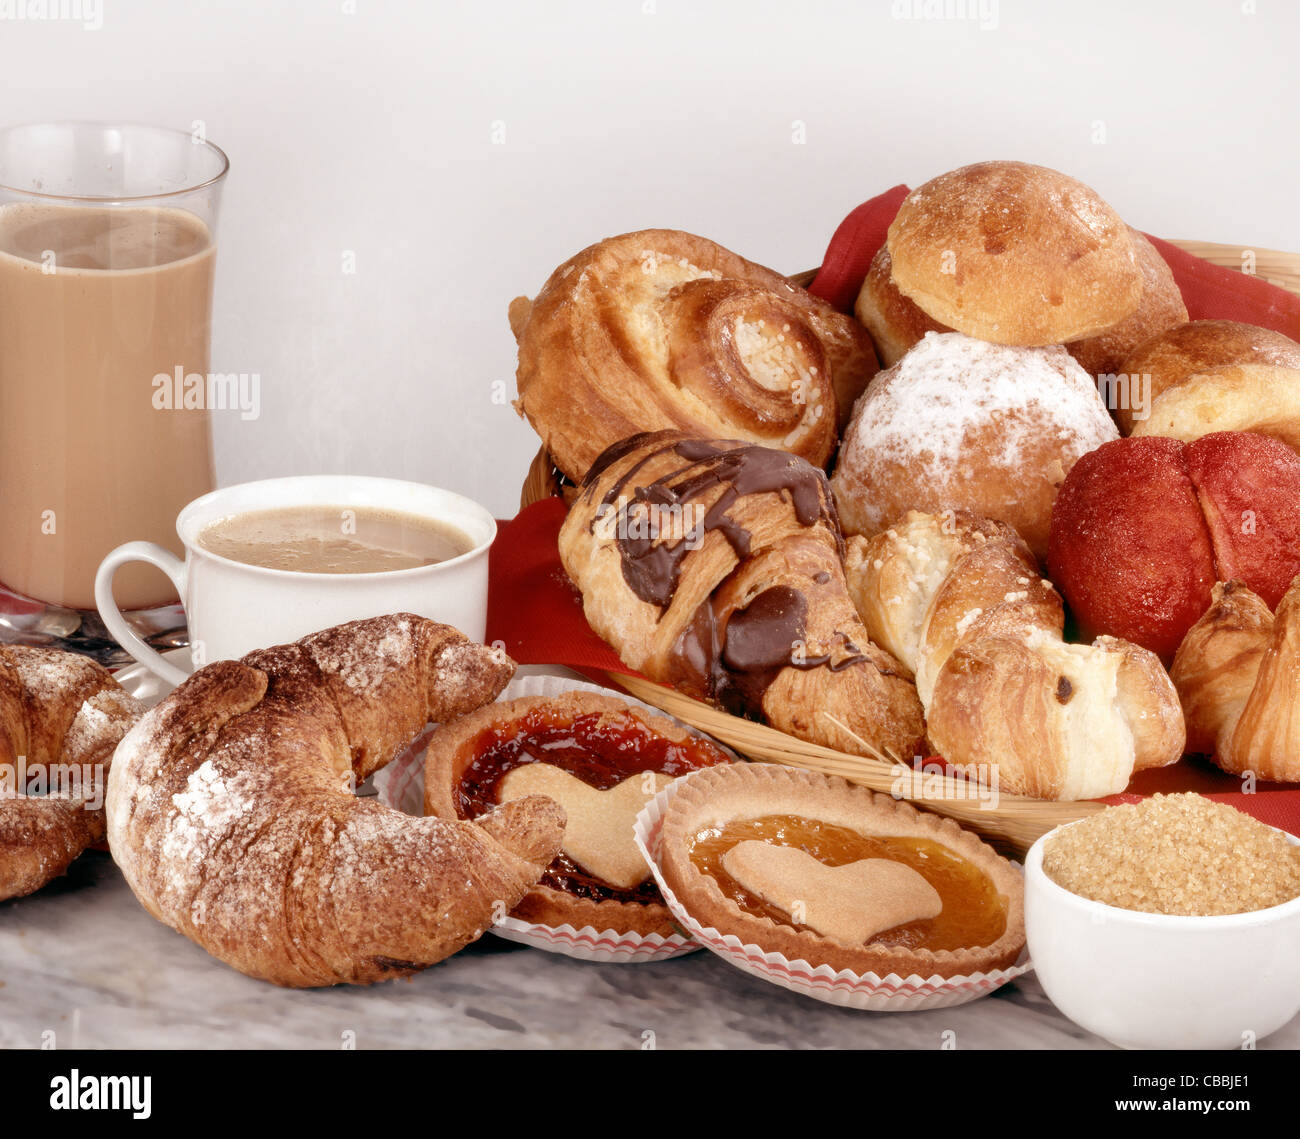 Stock Photo Bake Bakery Bread Breakfast Brioche Bun Butter Candy Chocolat Chocolate Close Up Closeup Coffee Cooking Croissant Delicious